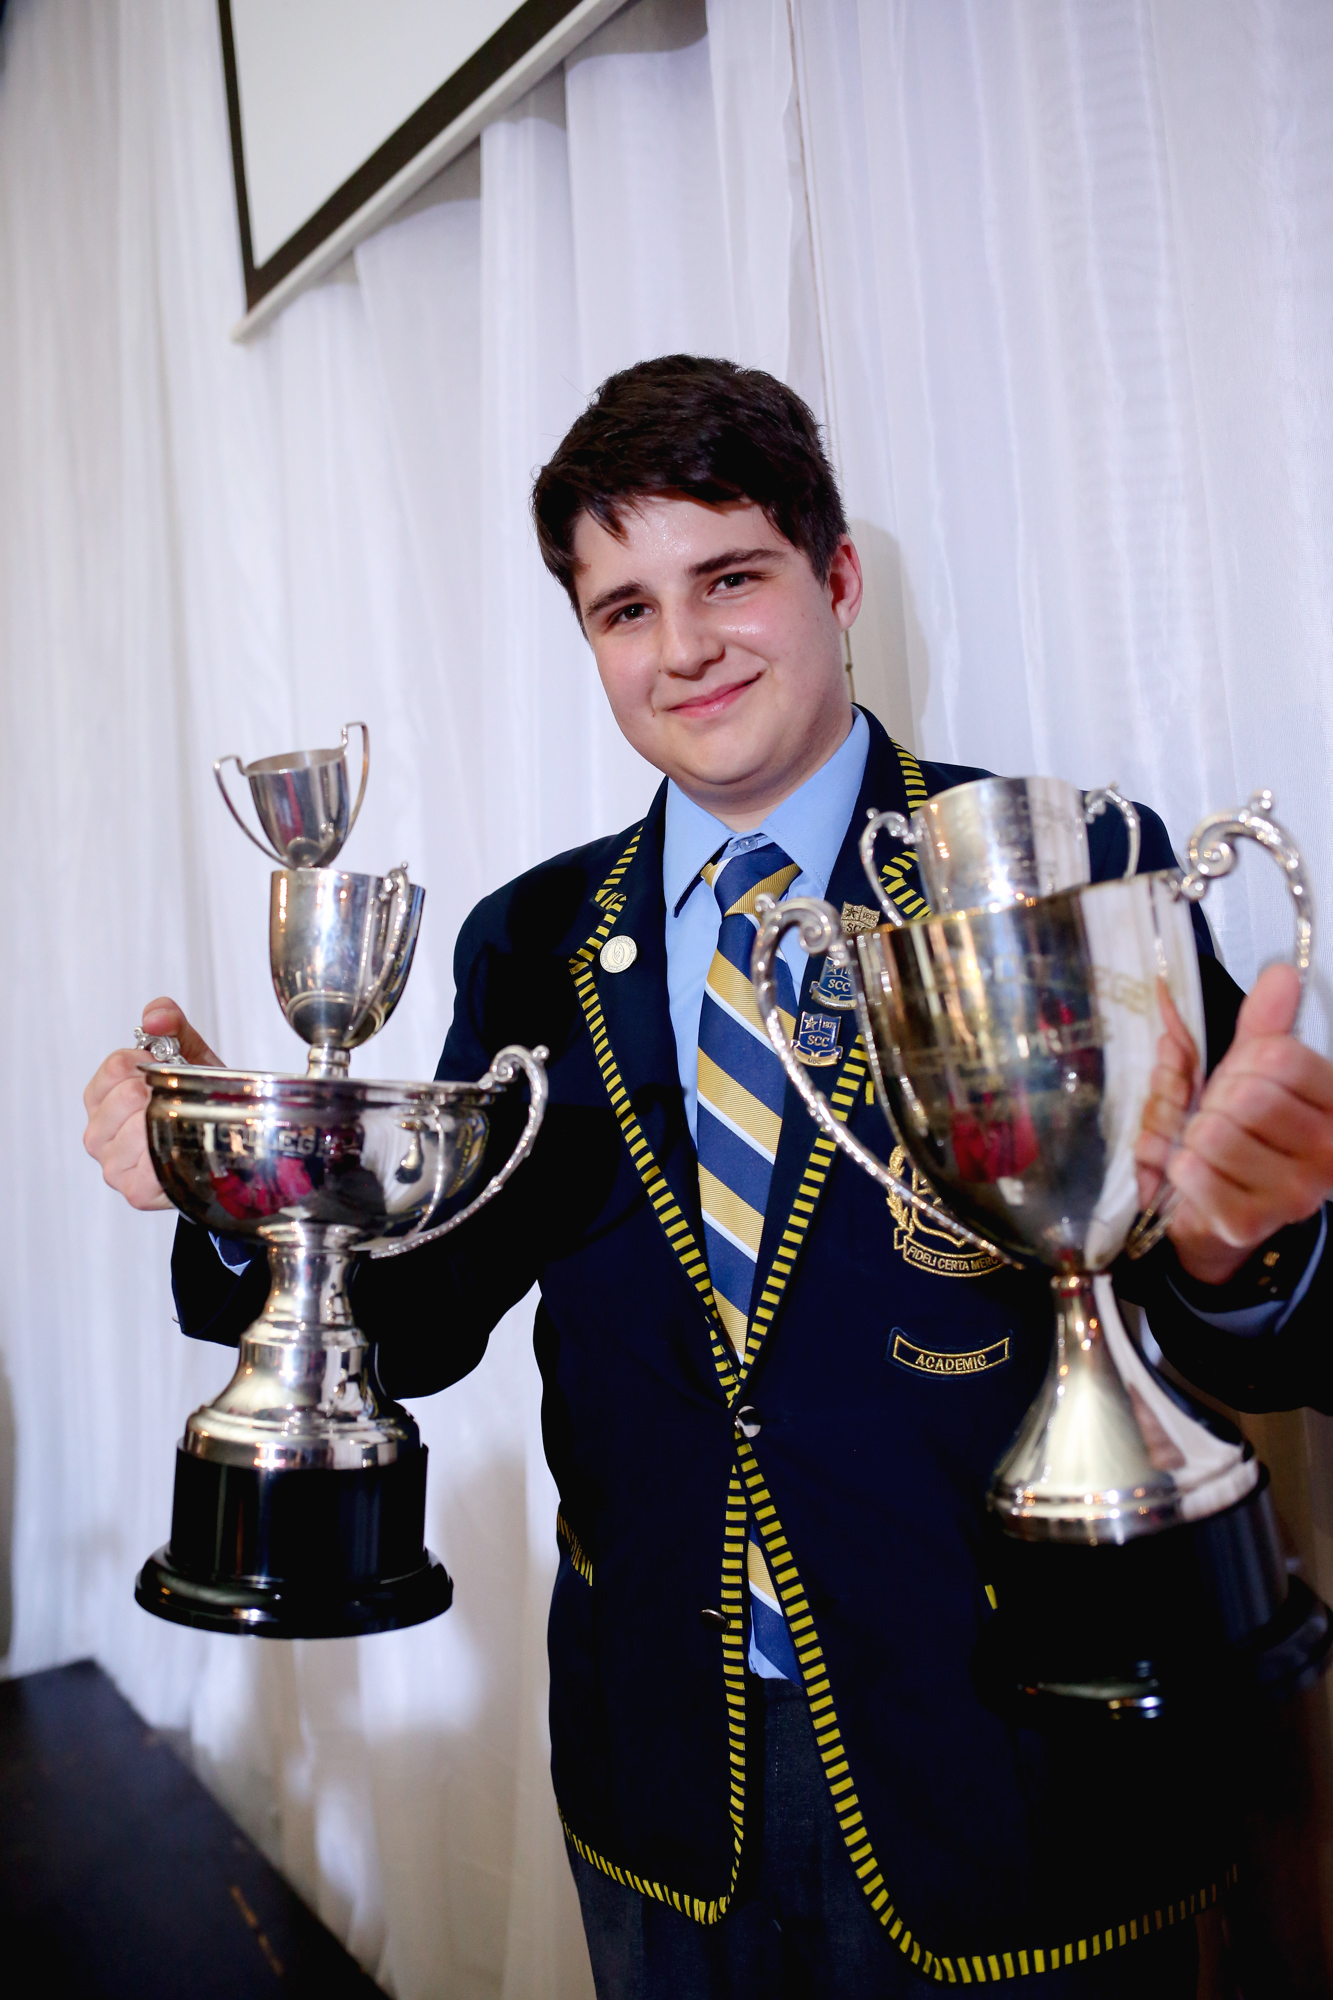 Jason Lazarov with his Top Cambridge Matric Student Awards